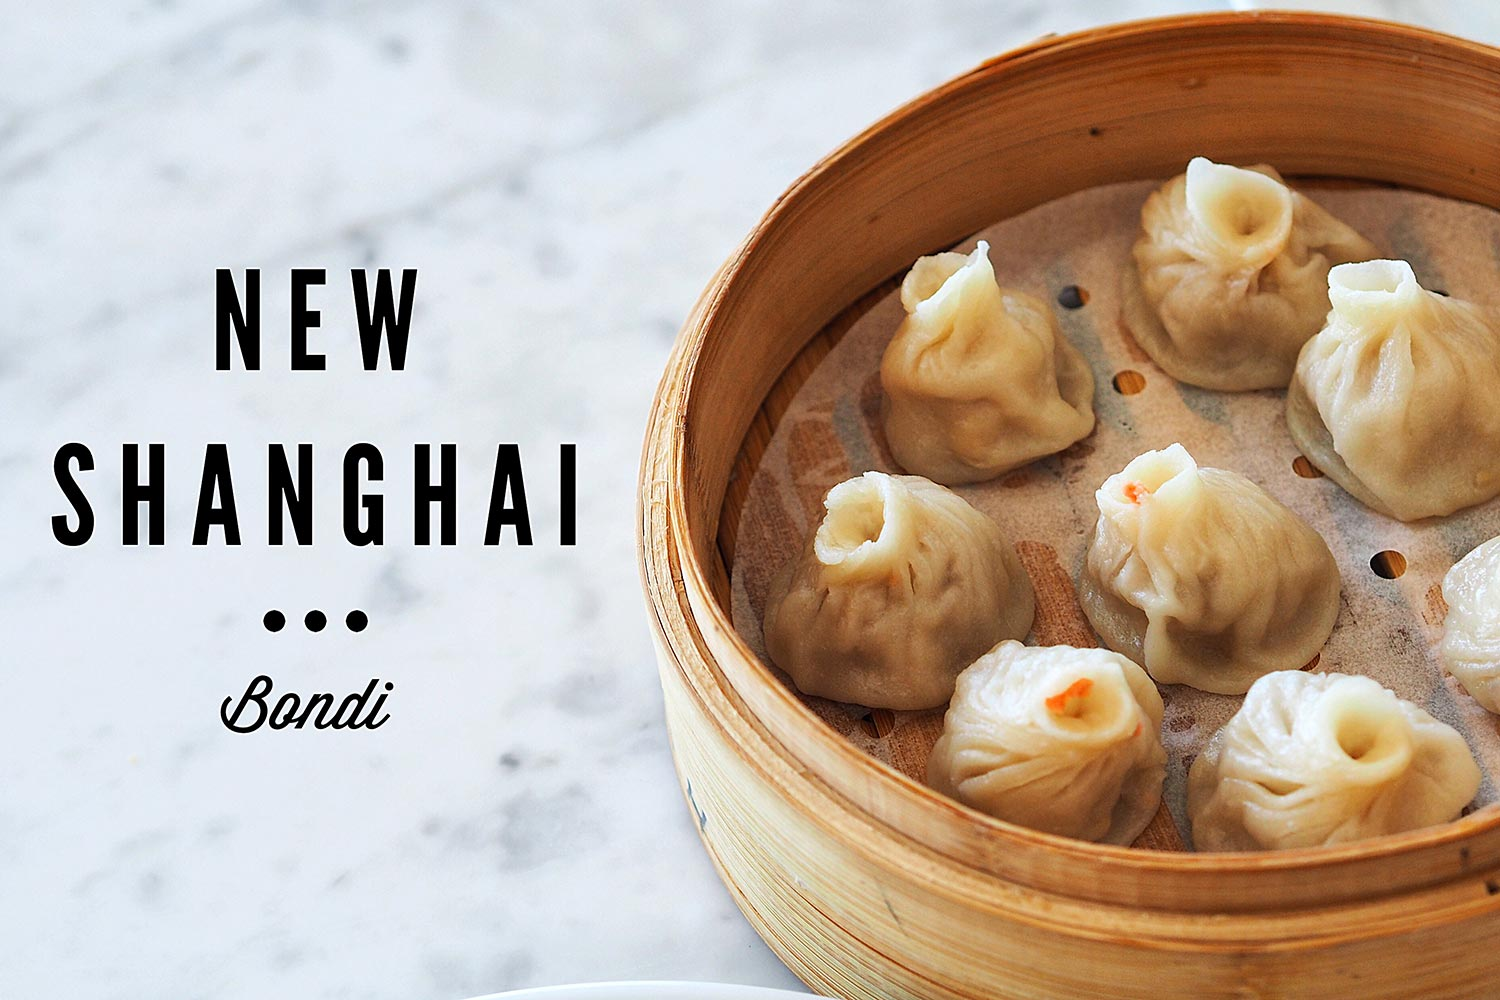 Sydney Food Blog Review of New Shanghai, Bondi